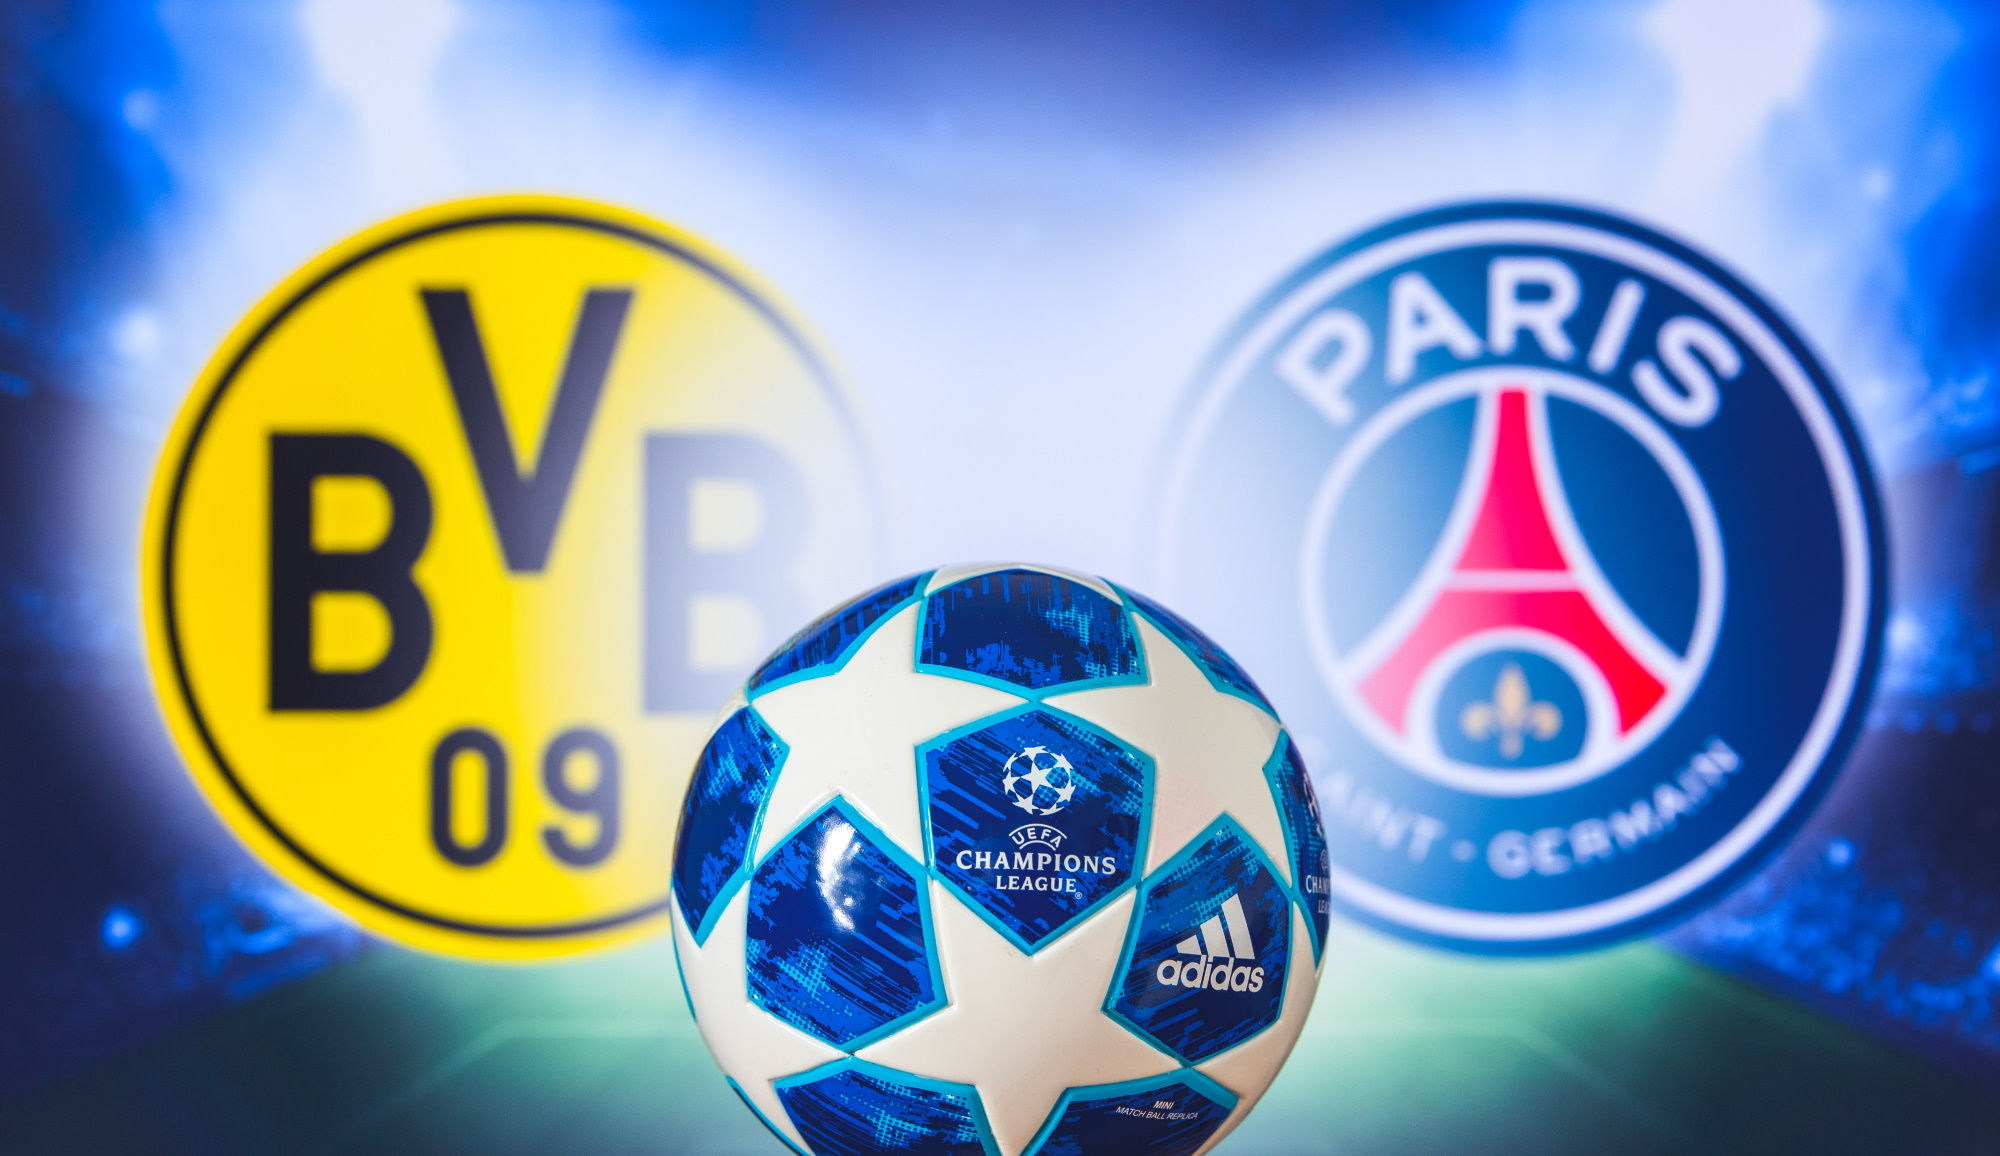 Borussia Dortmund vs PSG live stream: how to watch Champions League 2020 football from anywhere